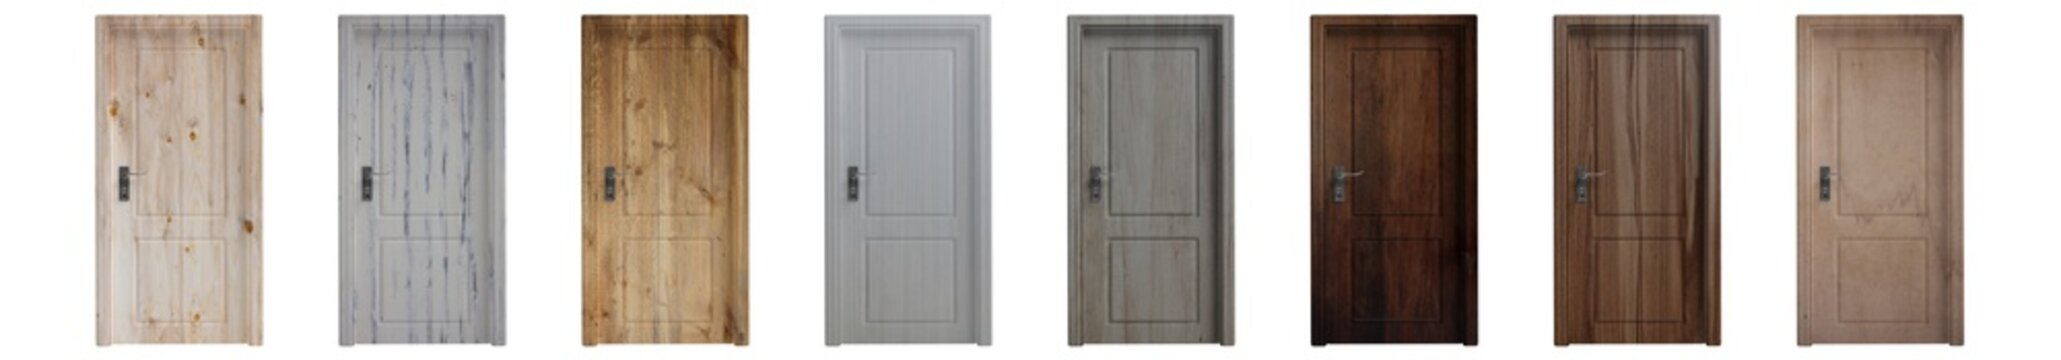 Set of various wooden closed doors isolated cutout on white background. 3d illustration